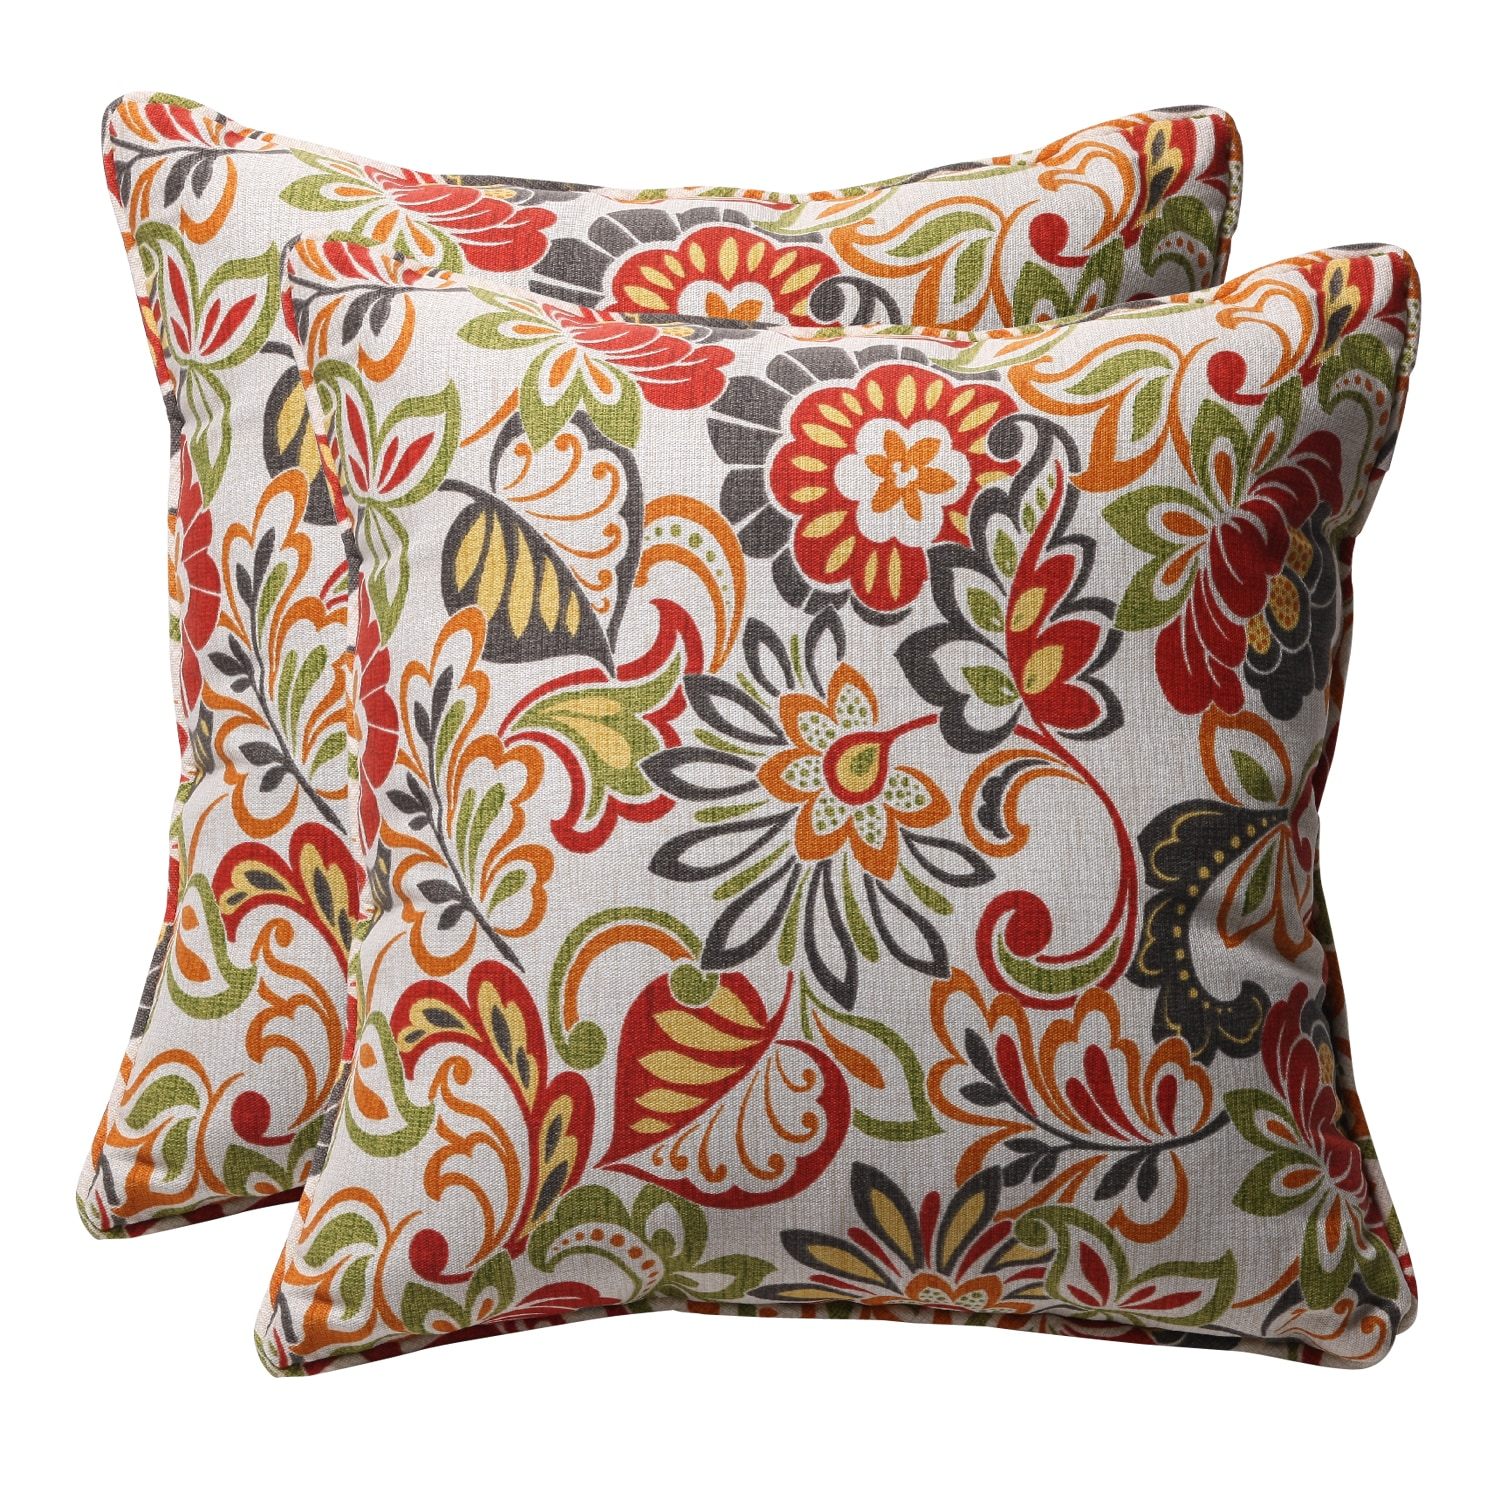 decorative multicolored floral square outdoor toss pillows. Black Bedroom Furniture Sets. Home Design Ideas